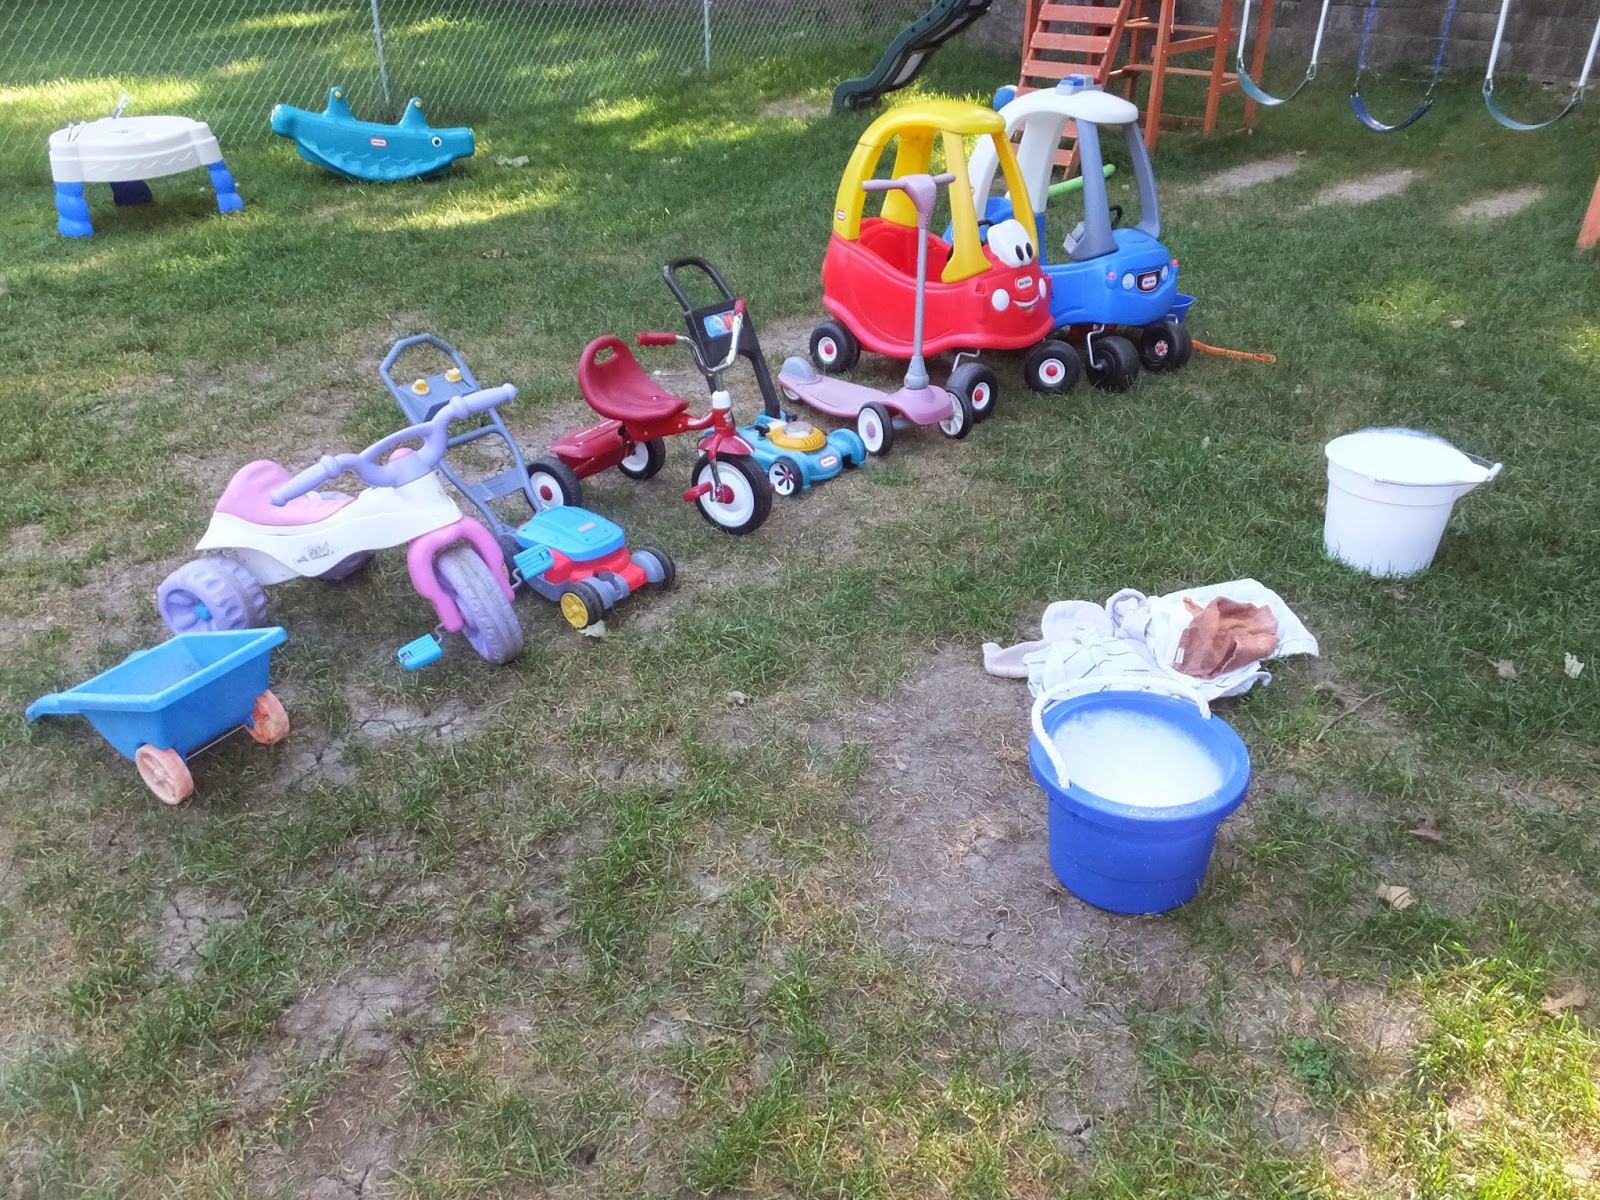 Kidspert The Great Toy Wash